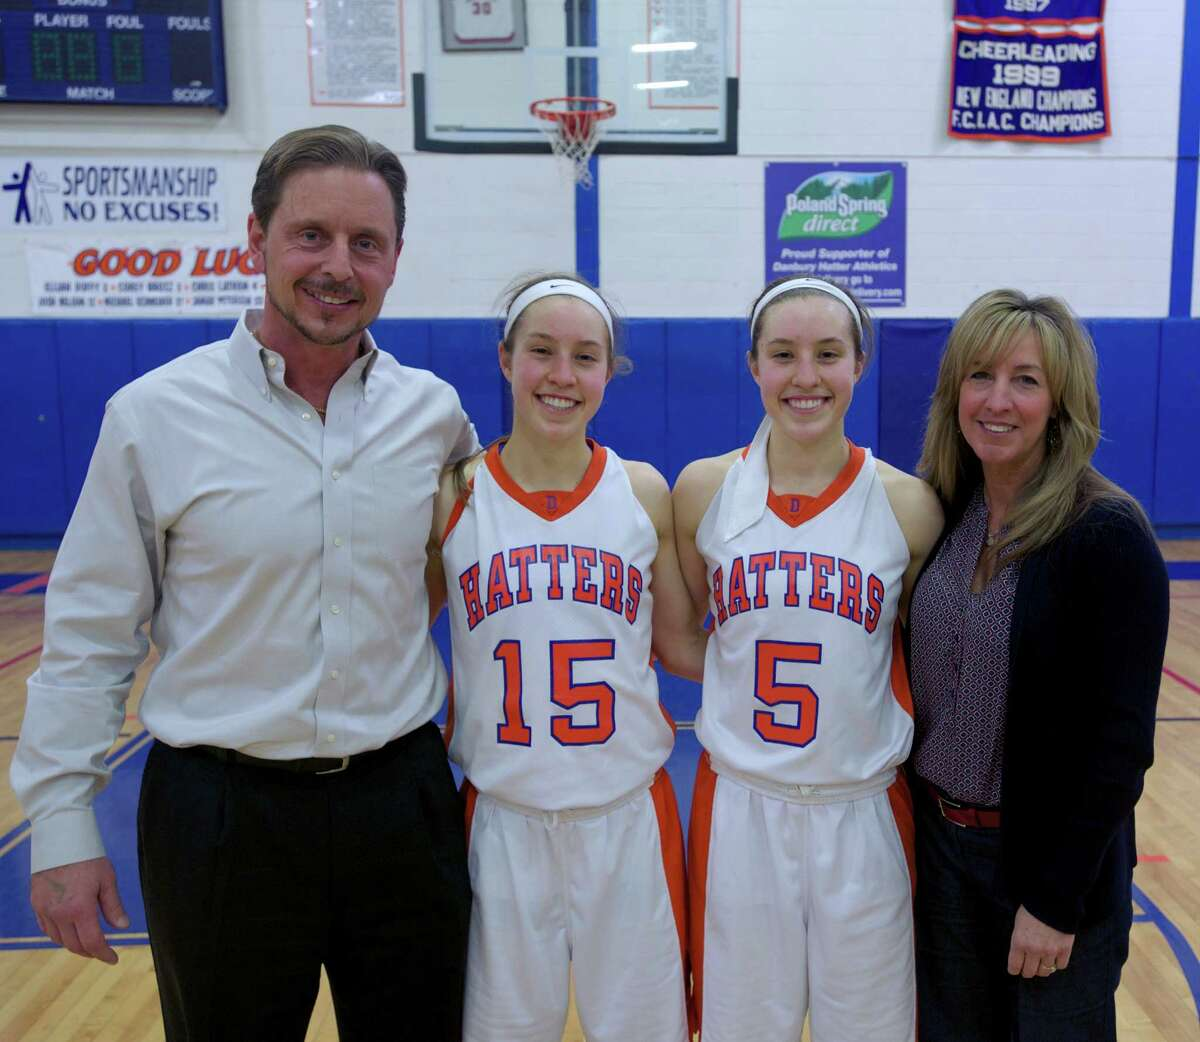 Danbury's Rebecca Gartner (15) scored her 1,000th point during the Class LL girls basketball state tournament second round game between Simsbury and Danbury, at Danbury High School, on Thursday, March 6, 2014. She is joined by her sister Rachel Gartner (5) who also scored her 1,000th point this season, and her parents Willi Gartner and Cheryl gartner.